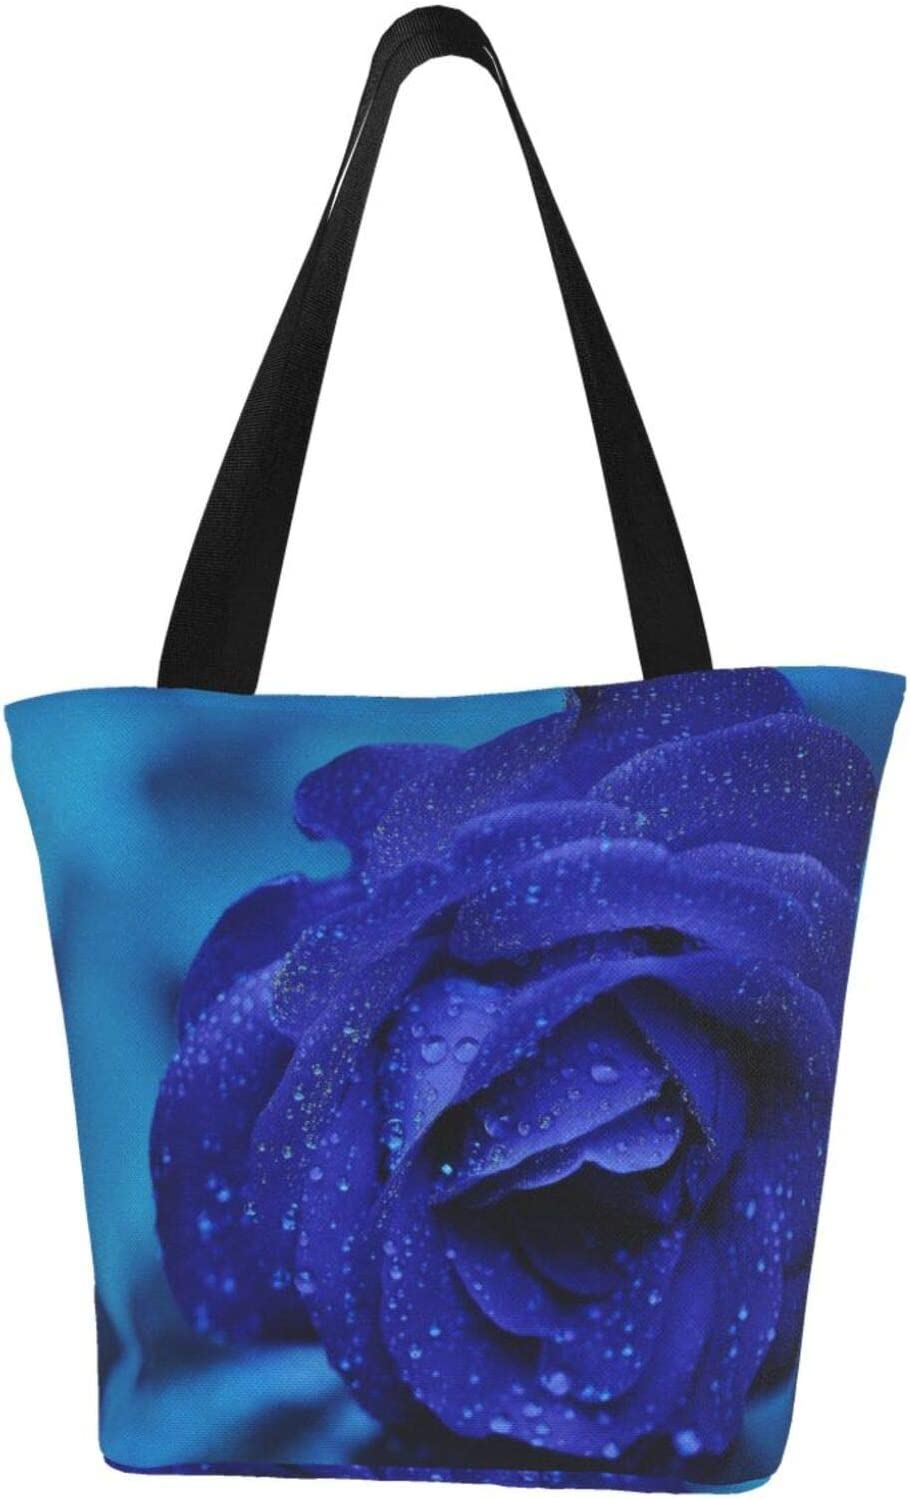 AKLID Blue Rose Extra Large Water for sold Overseas parallel import regular item out Bag Tote Resistant Canvas